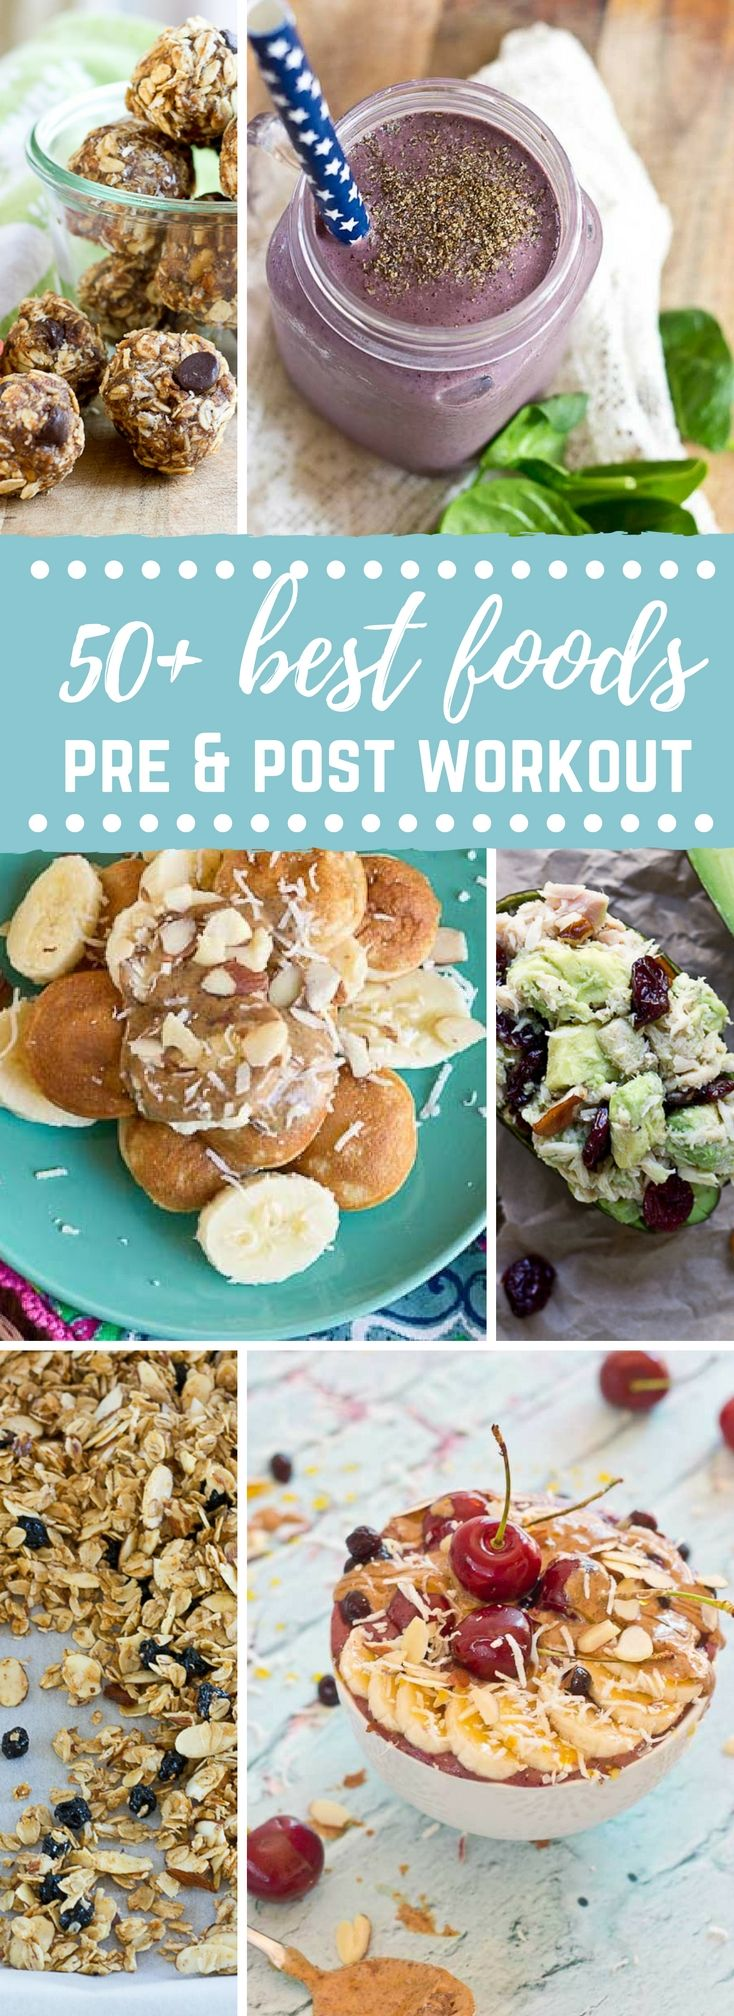 "The burning sports nutrition question answered, ""What should I eat before and after a workout?"" A round up of 50 plus best foods to eat before and after a workout from @kristinalaruerd"